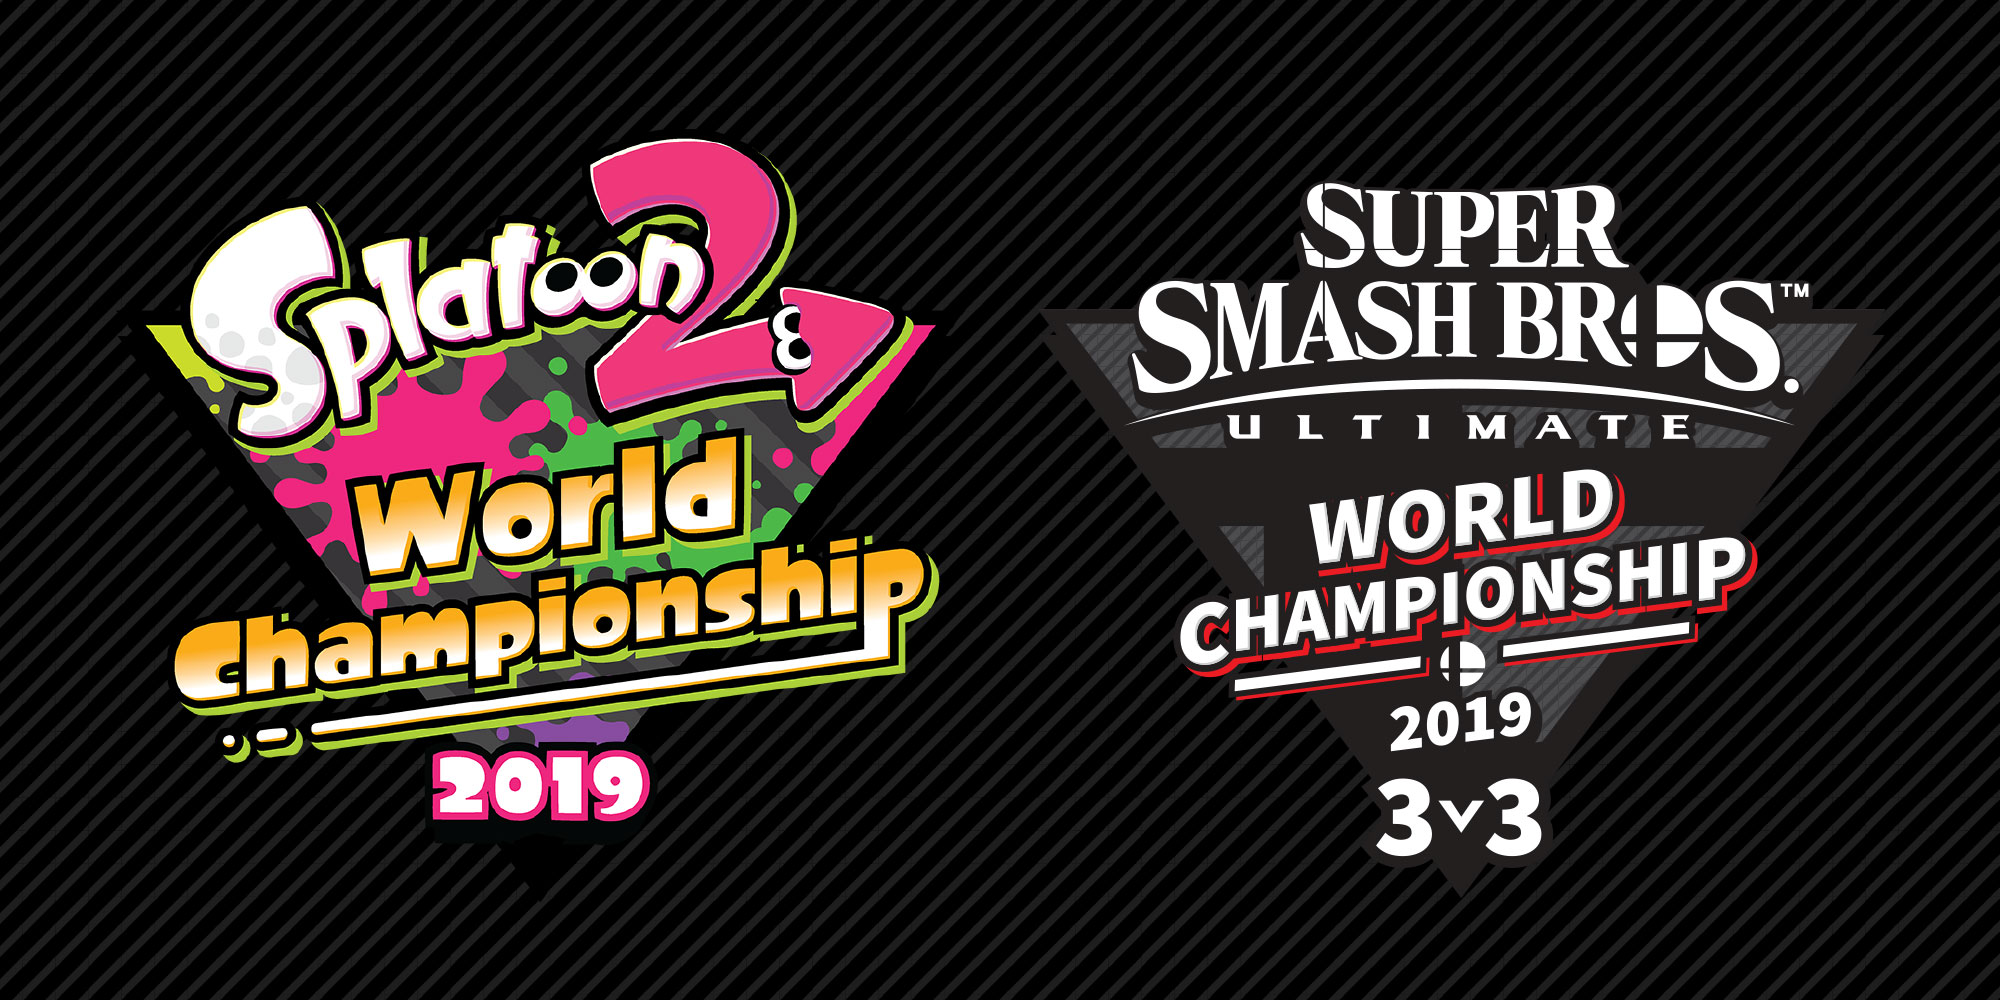 World champions crowned in Splatoon 2 and Super Smash Bros. Ultimate tournaments at E3 2019!